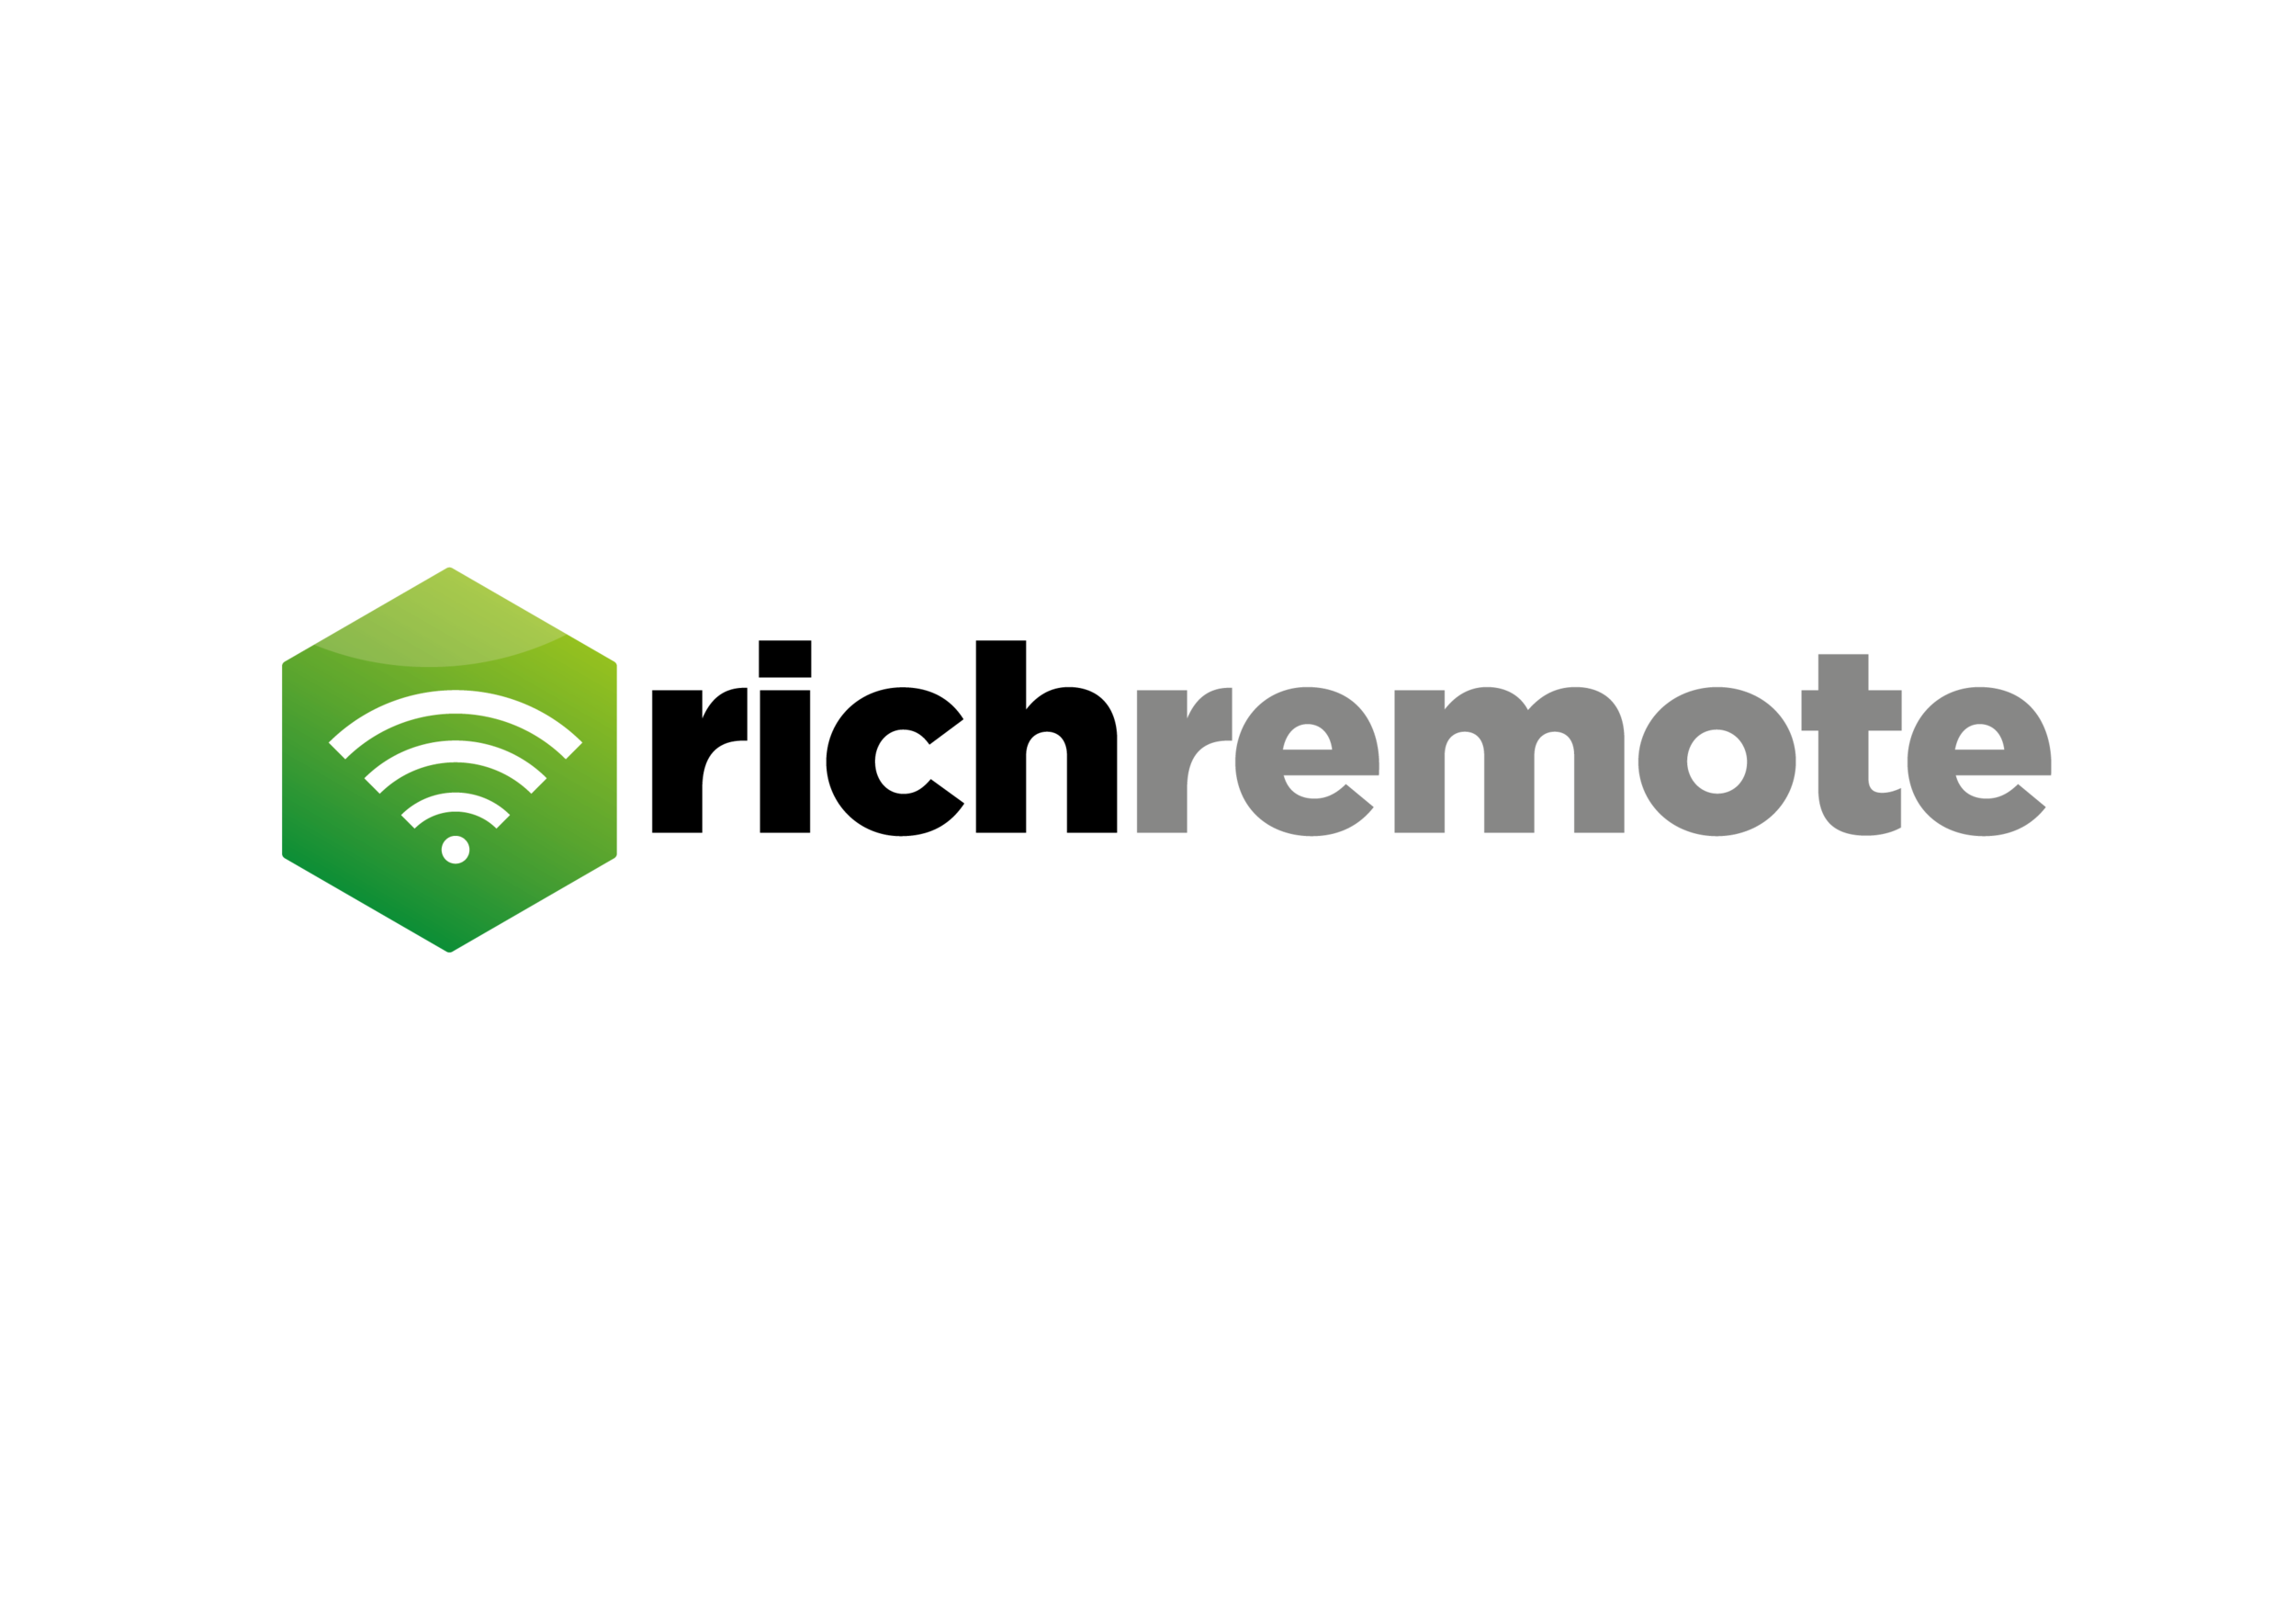 richremote_logo(trn).png